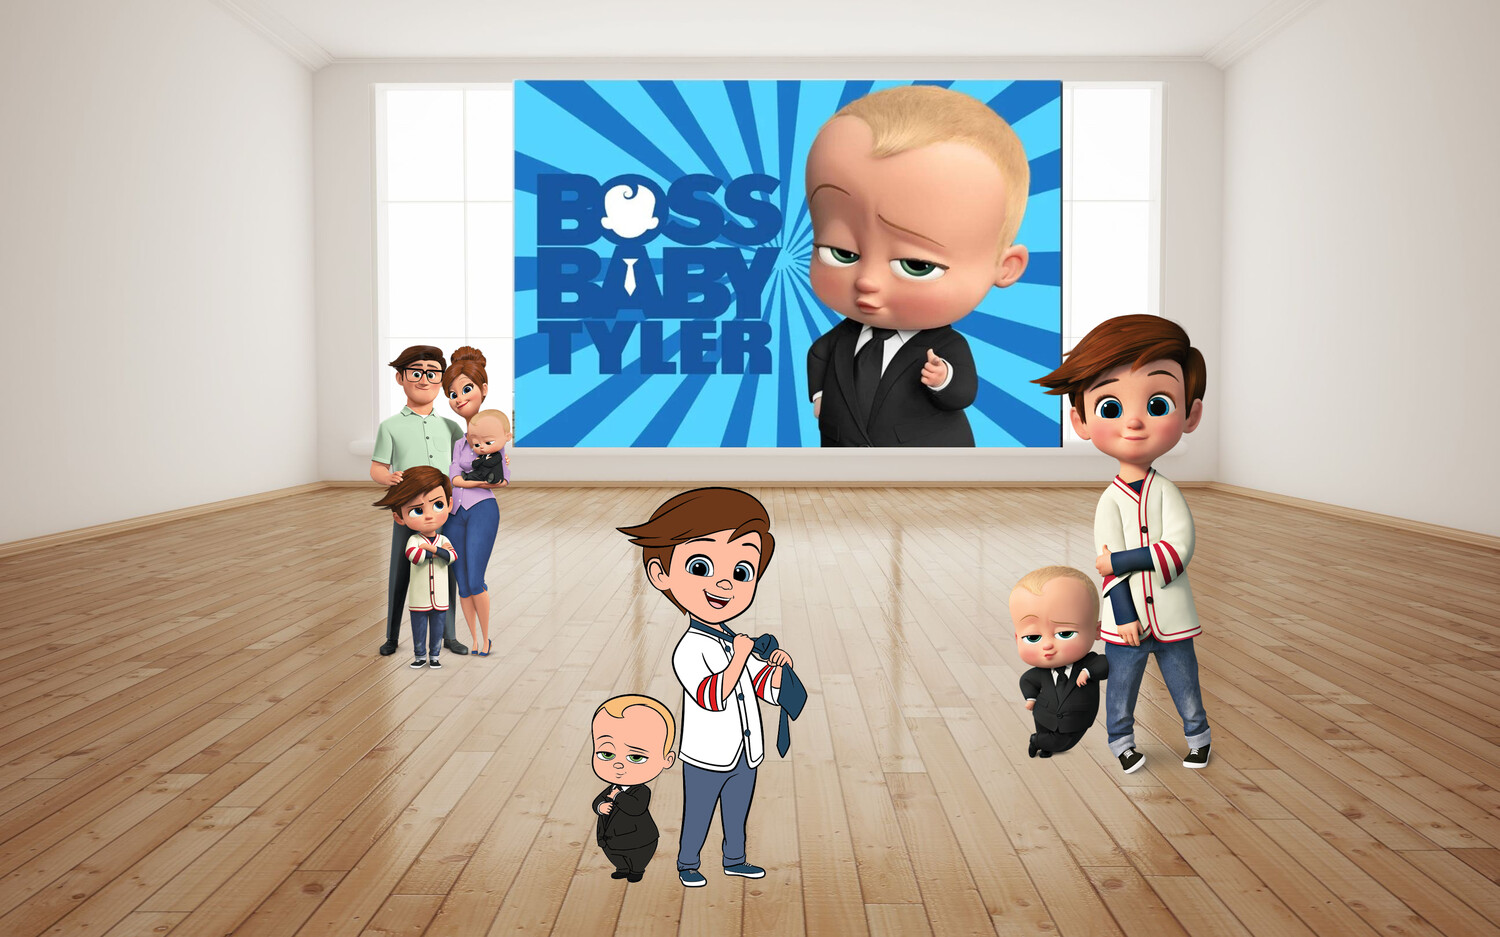 The Baby Boss Birthday Backdrop, The Baby Boss Backdrop, The Baby Boss Wall Art, The Baby Boss Wall Decoration